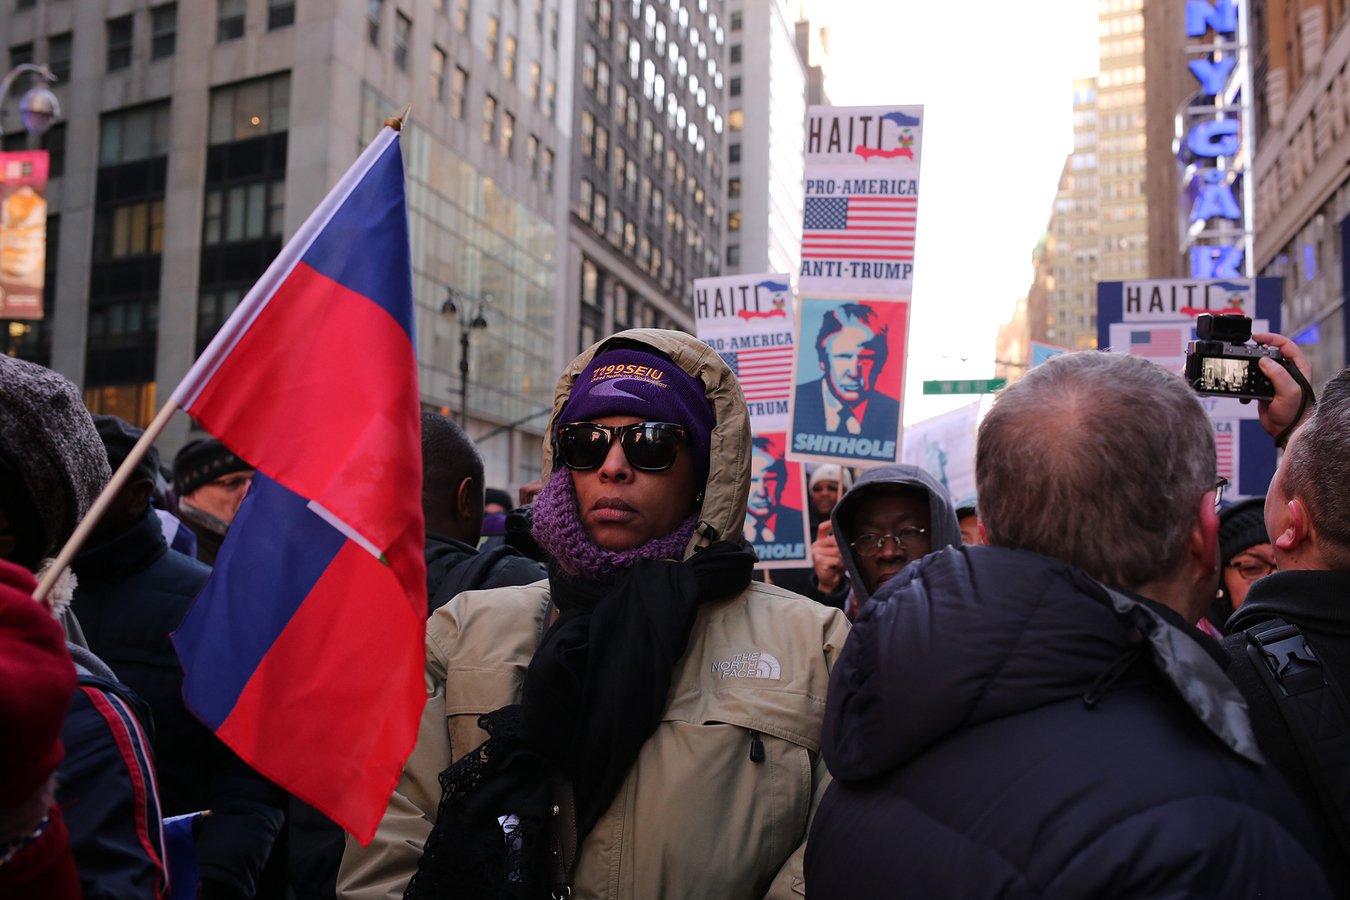 Other Protests Martin Luther King Day 1199 SEIU United Healthcare Workers East Rally Against Racism: Stand Up for Haiti and Africa Times Square 1/15/18